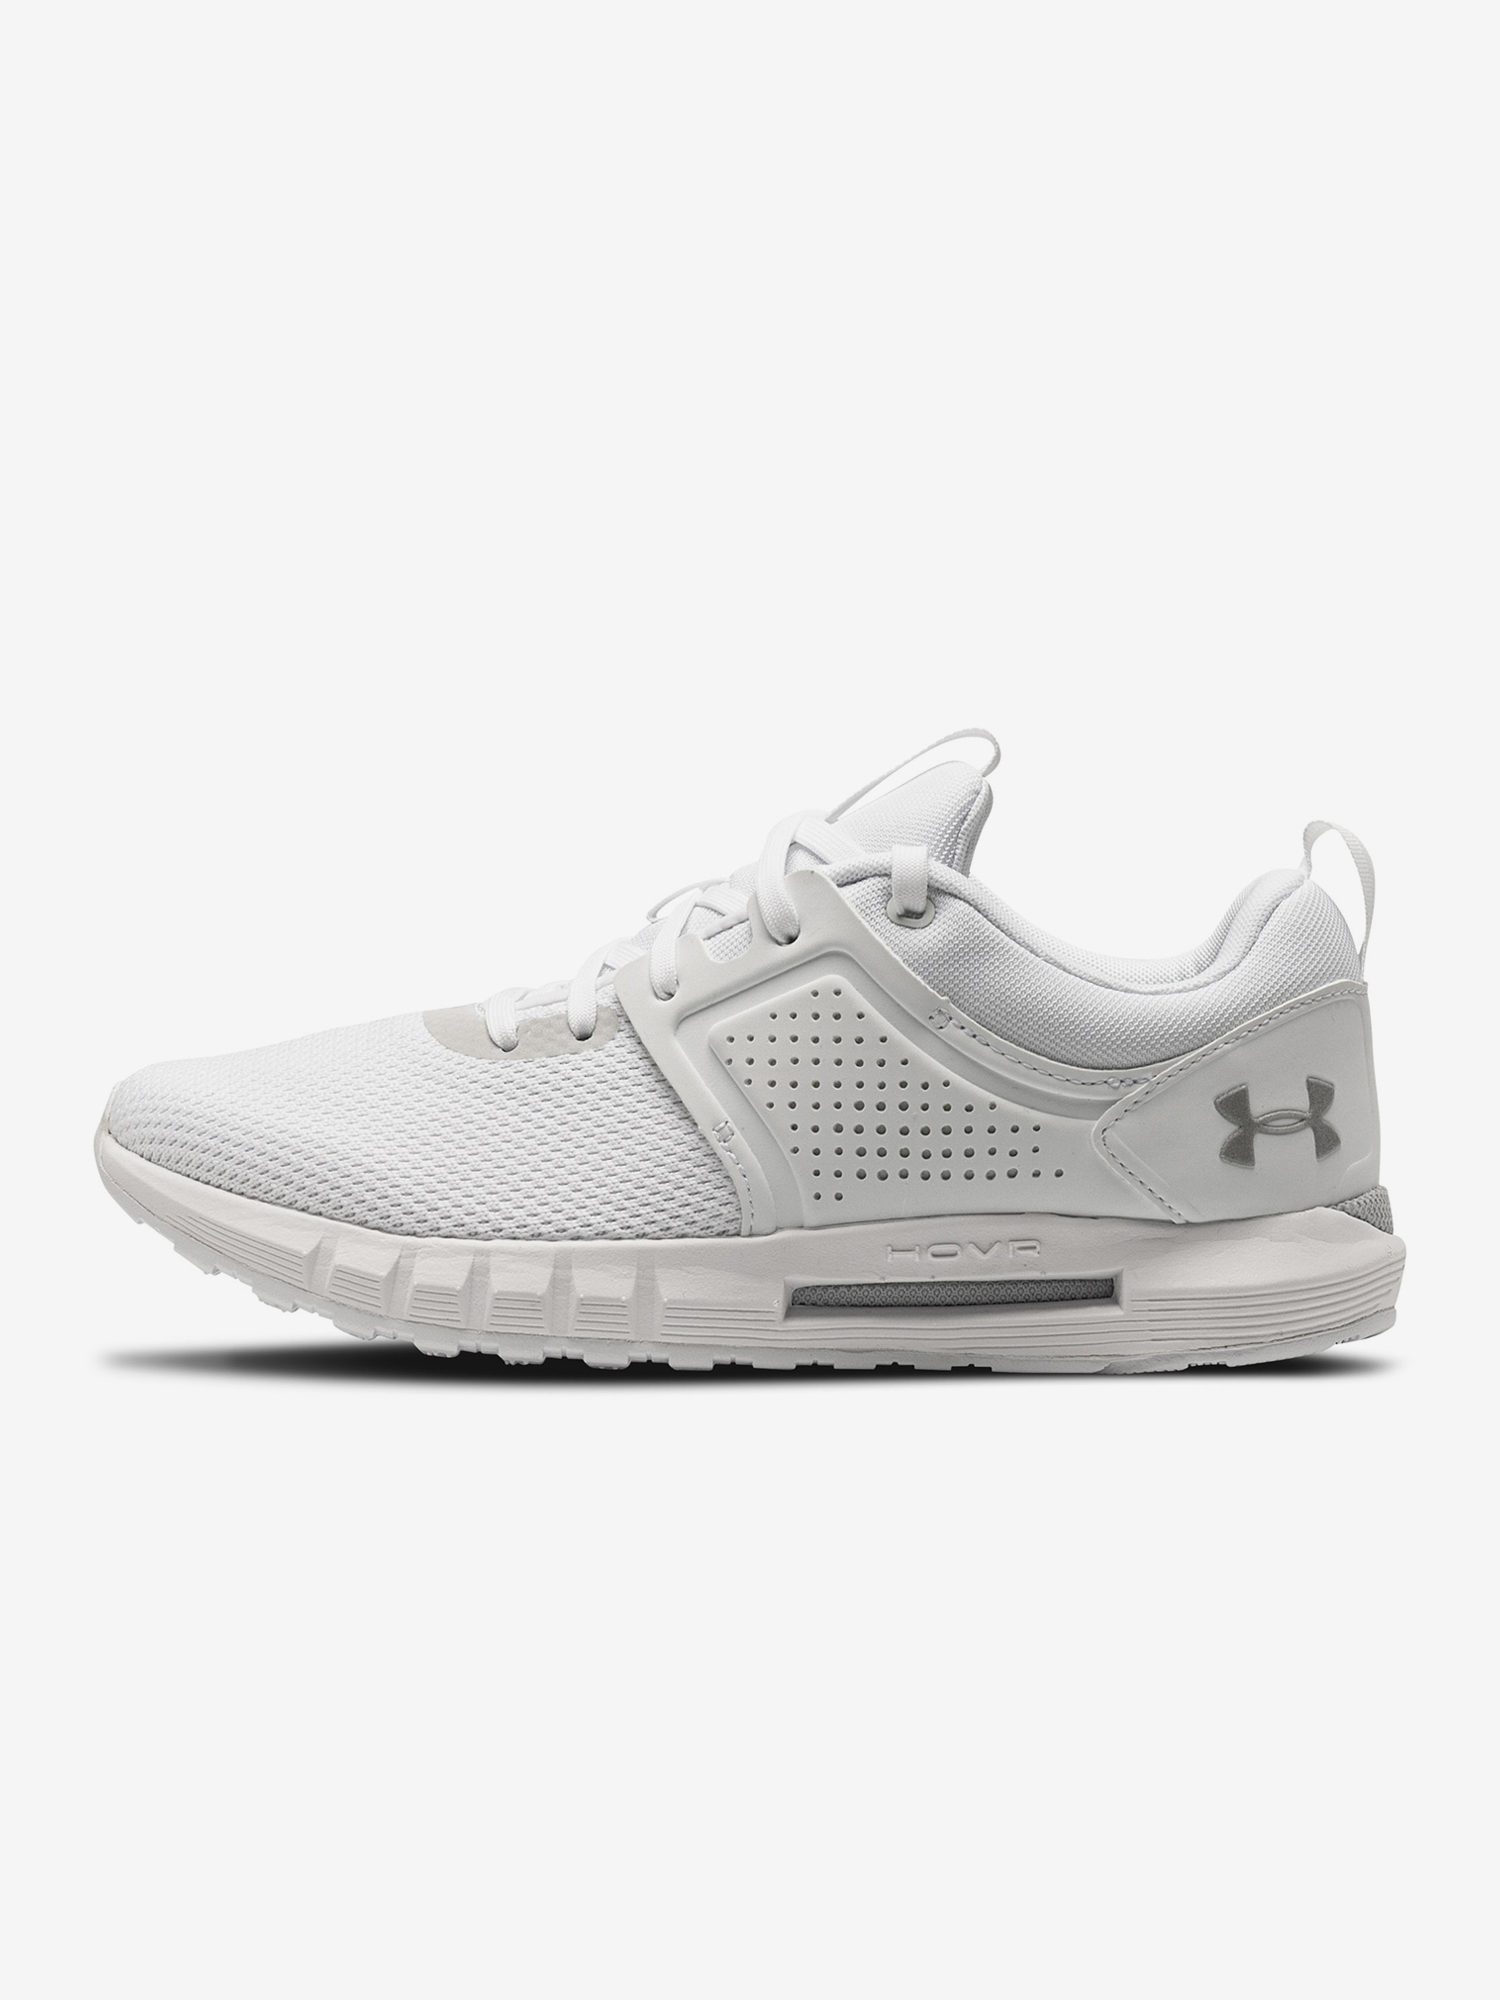 Boty Under Armour W Hovr Ctw-Wht